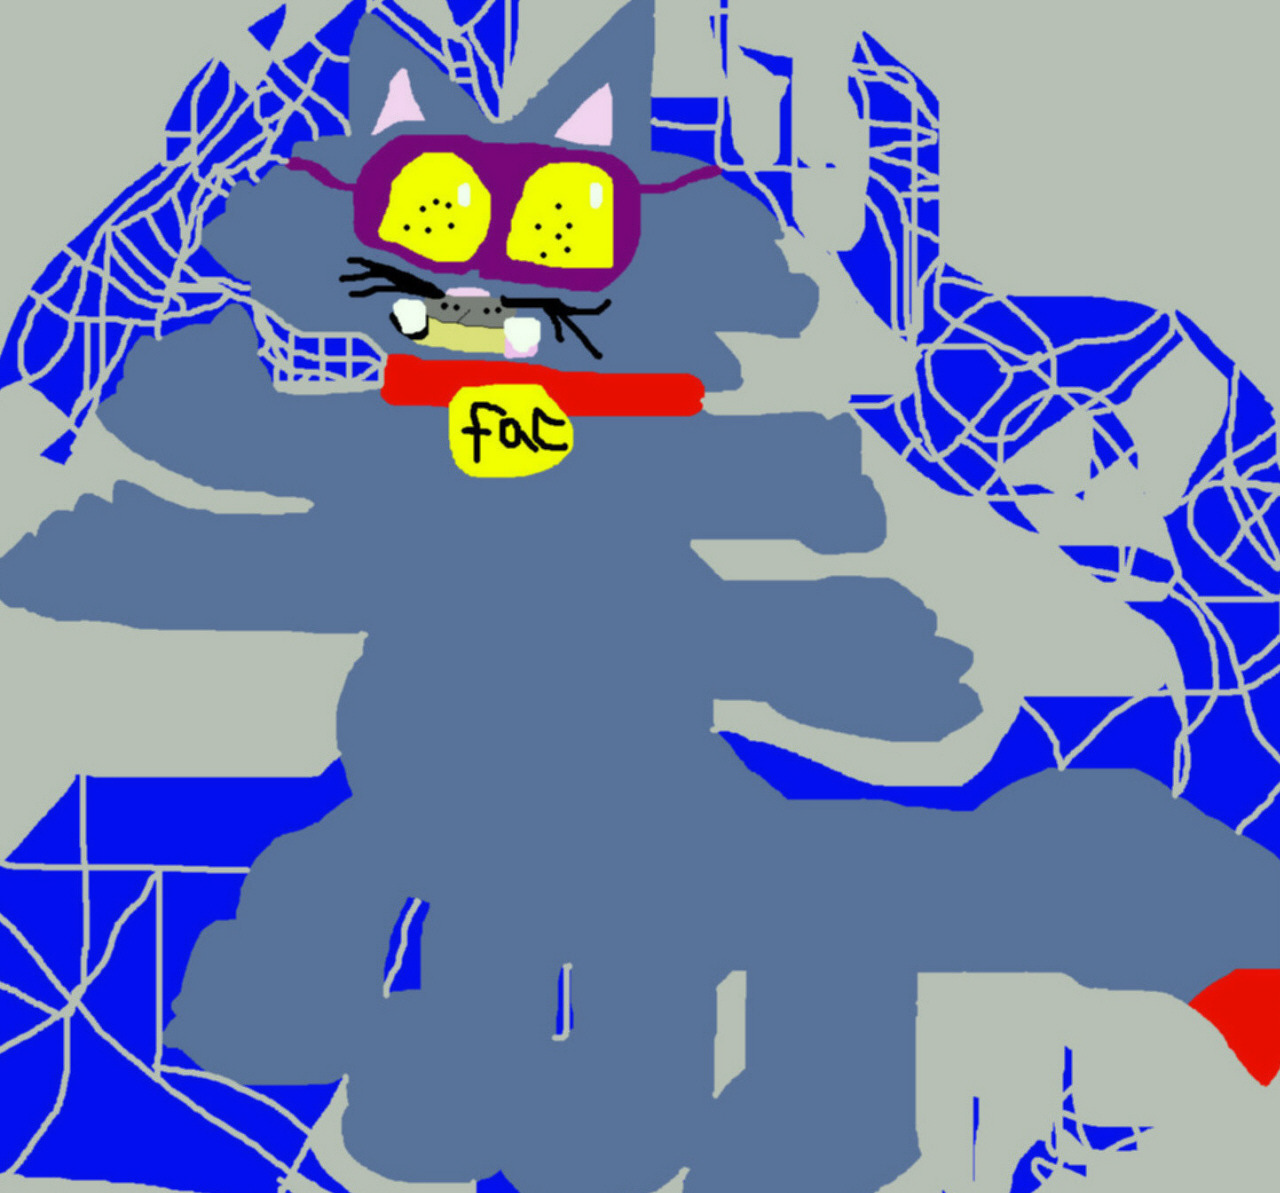 The Fac Spidercat Pharal Posting For Fun MS Paint by Falconlobo